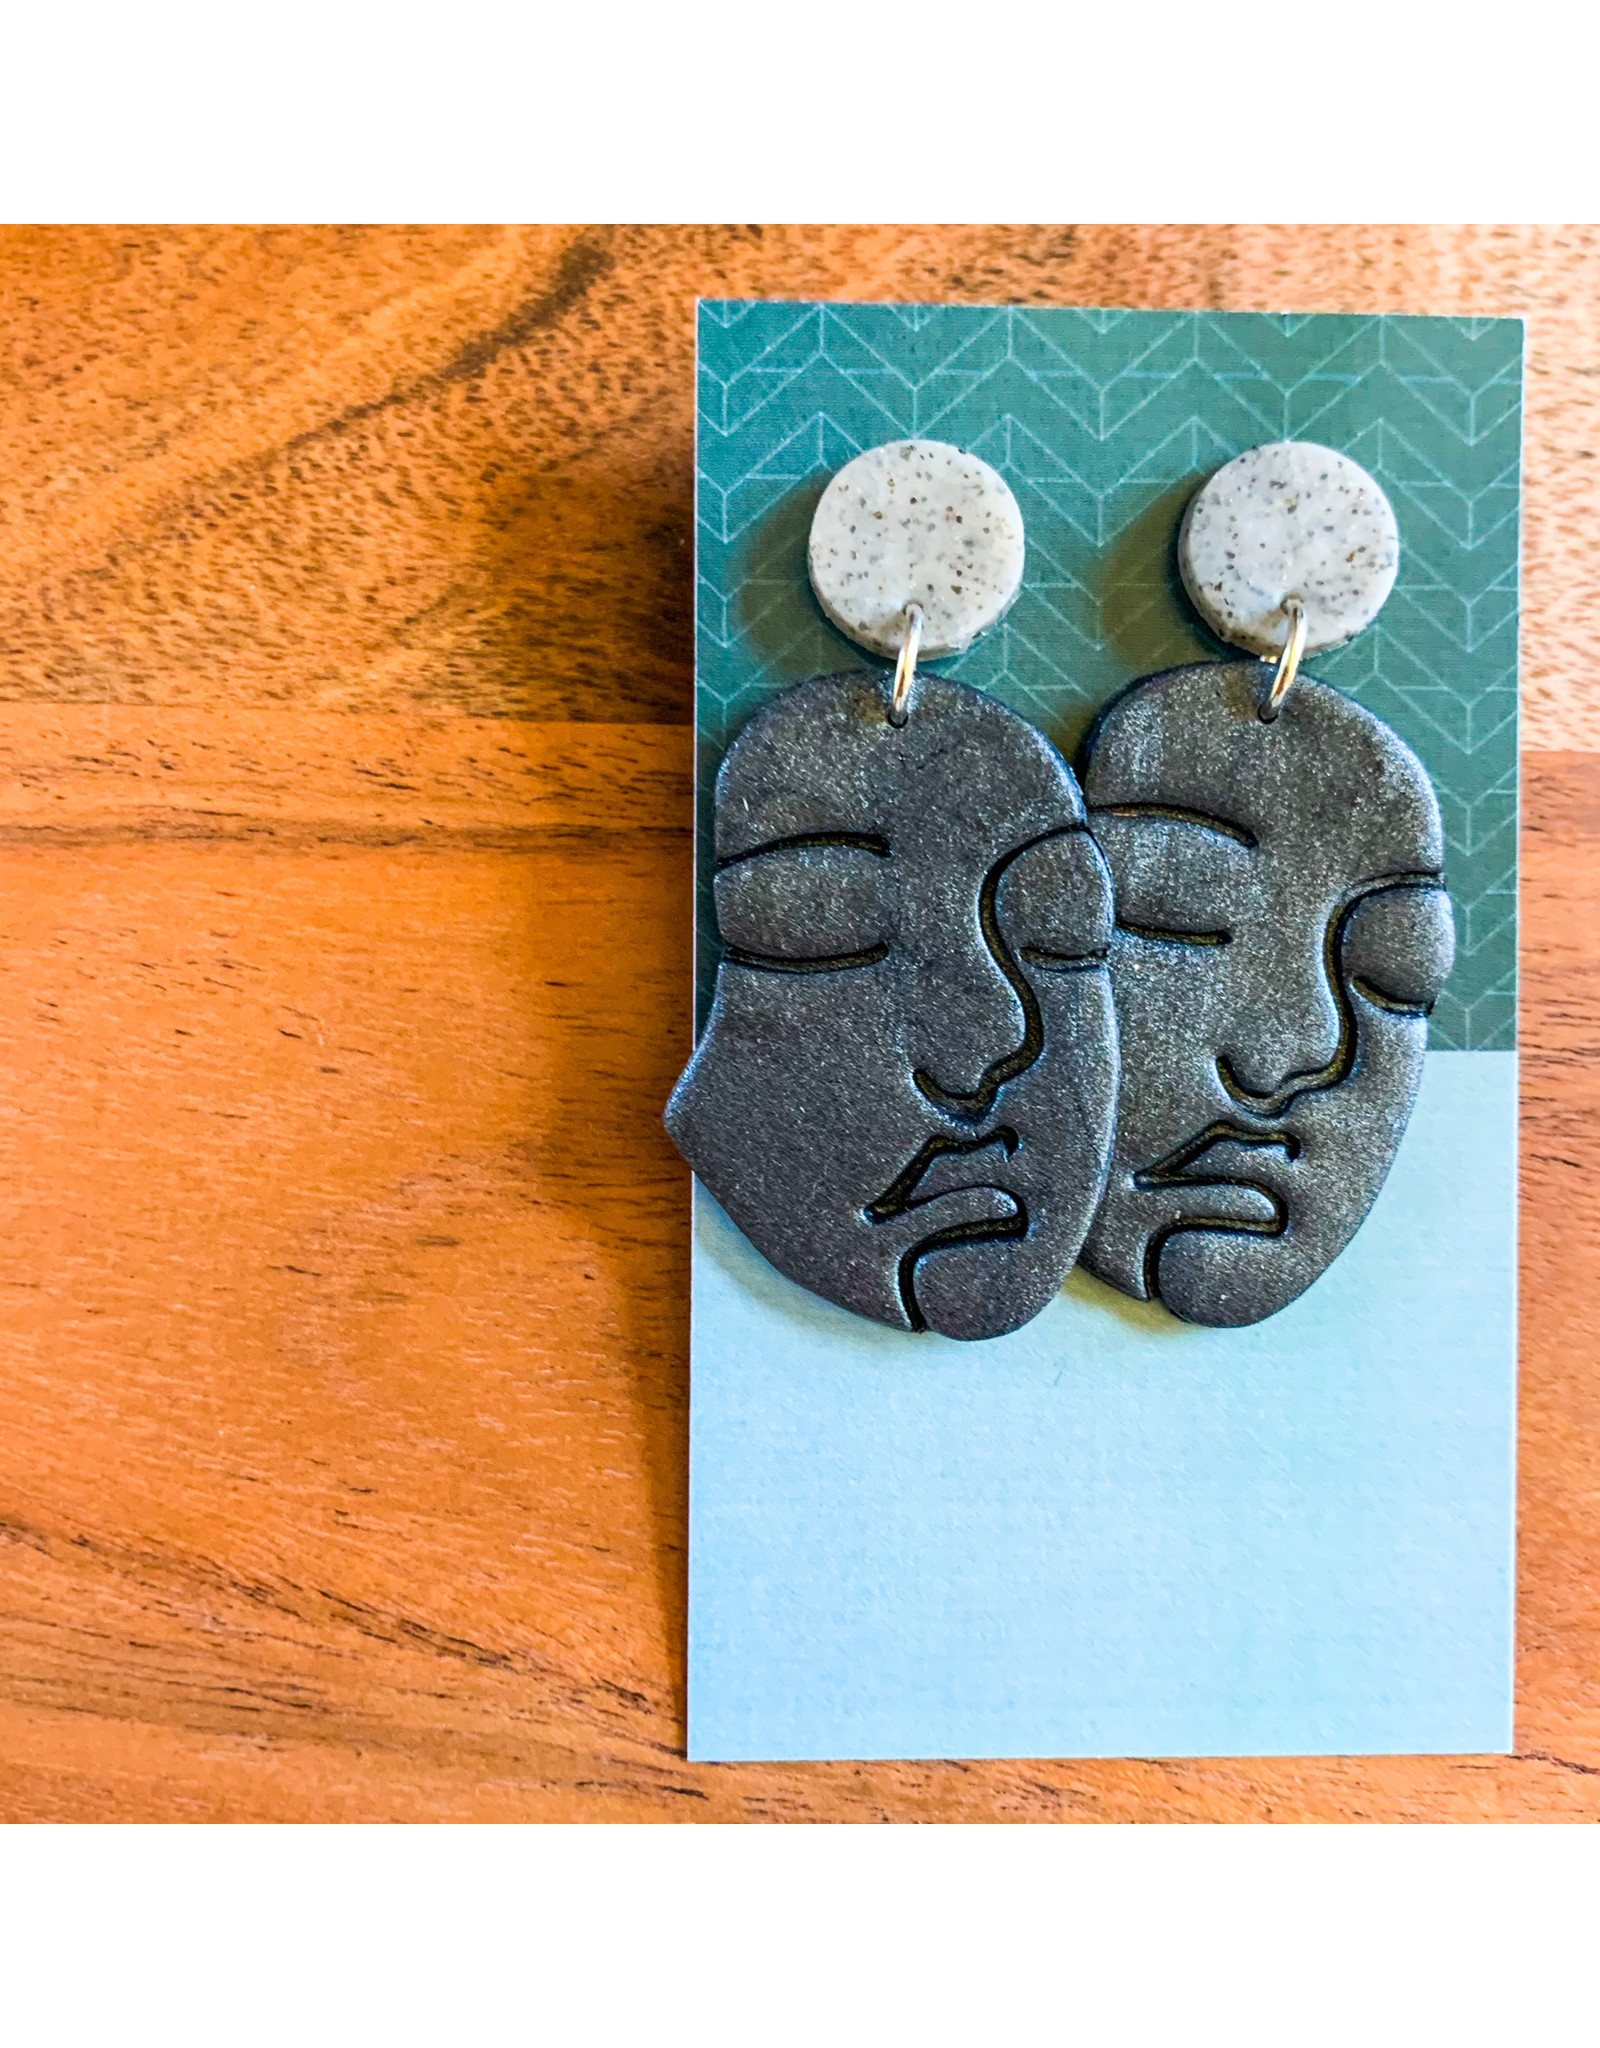 Maria Anholzer-Consignment Grey and Charcoal Faces Consignment